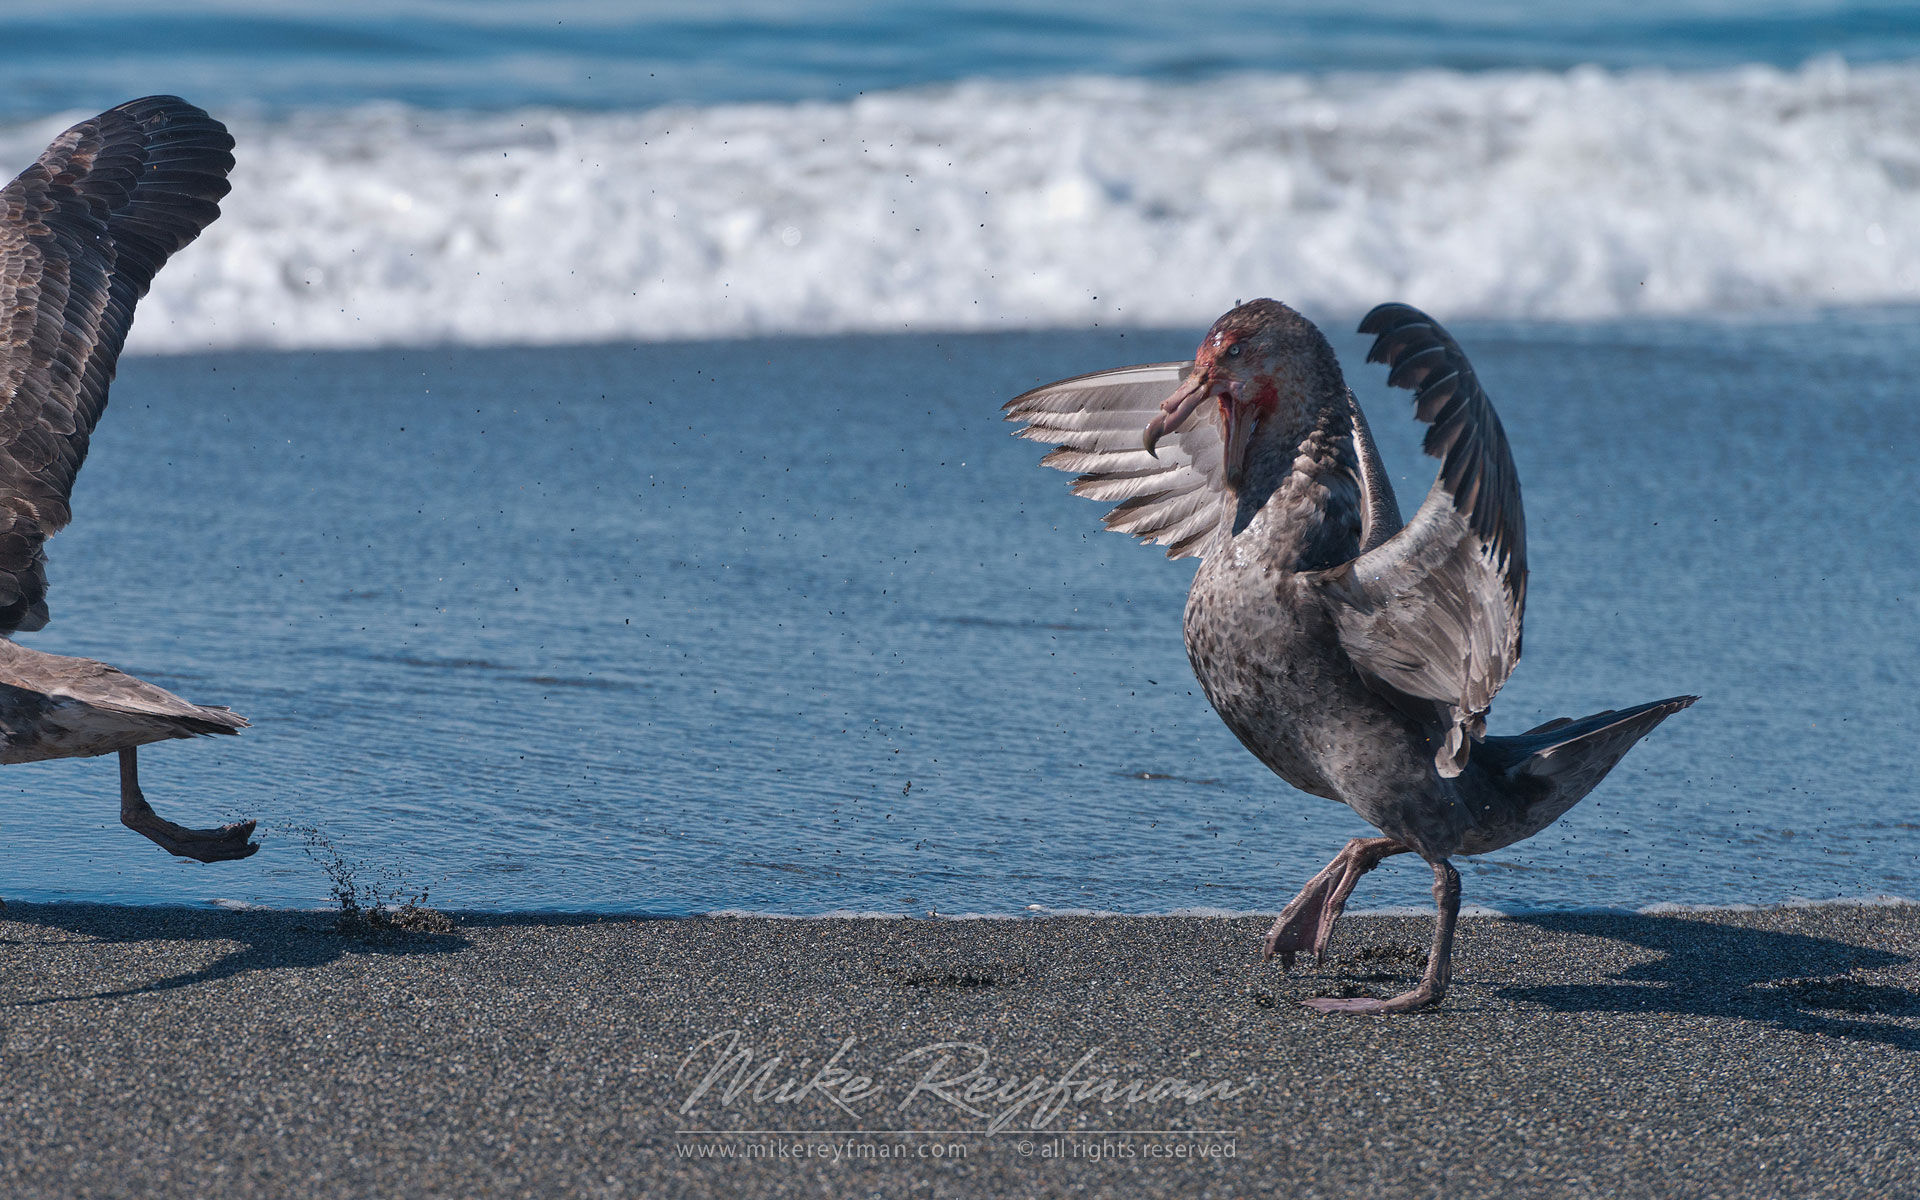 Beachmaster. Antarctic Giant Petrel (Macronectes giganteus). St. Andrews Bay, South Georgia, Sub-Antarctic. - Albatrosses-Petrels-Landscapes-South-Georgia-Sub-Antarctic - Mike Reyfman Photography